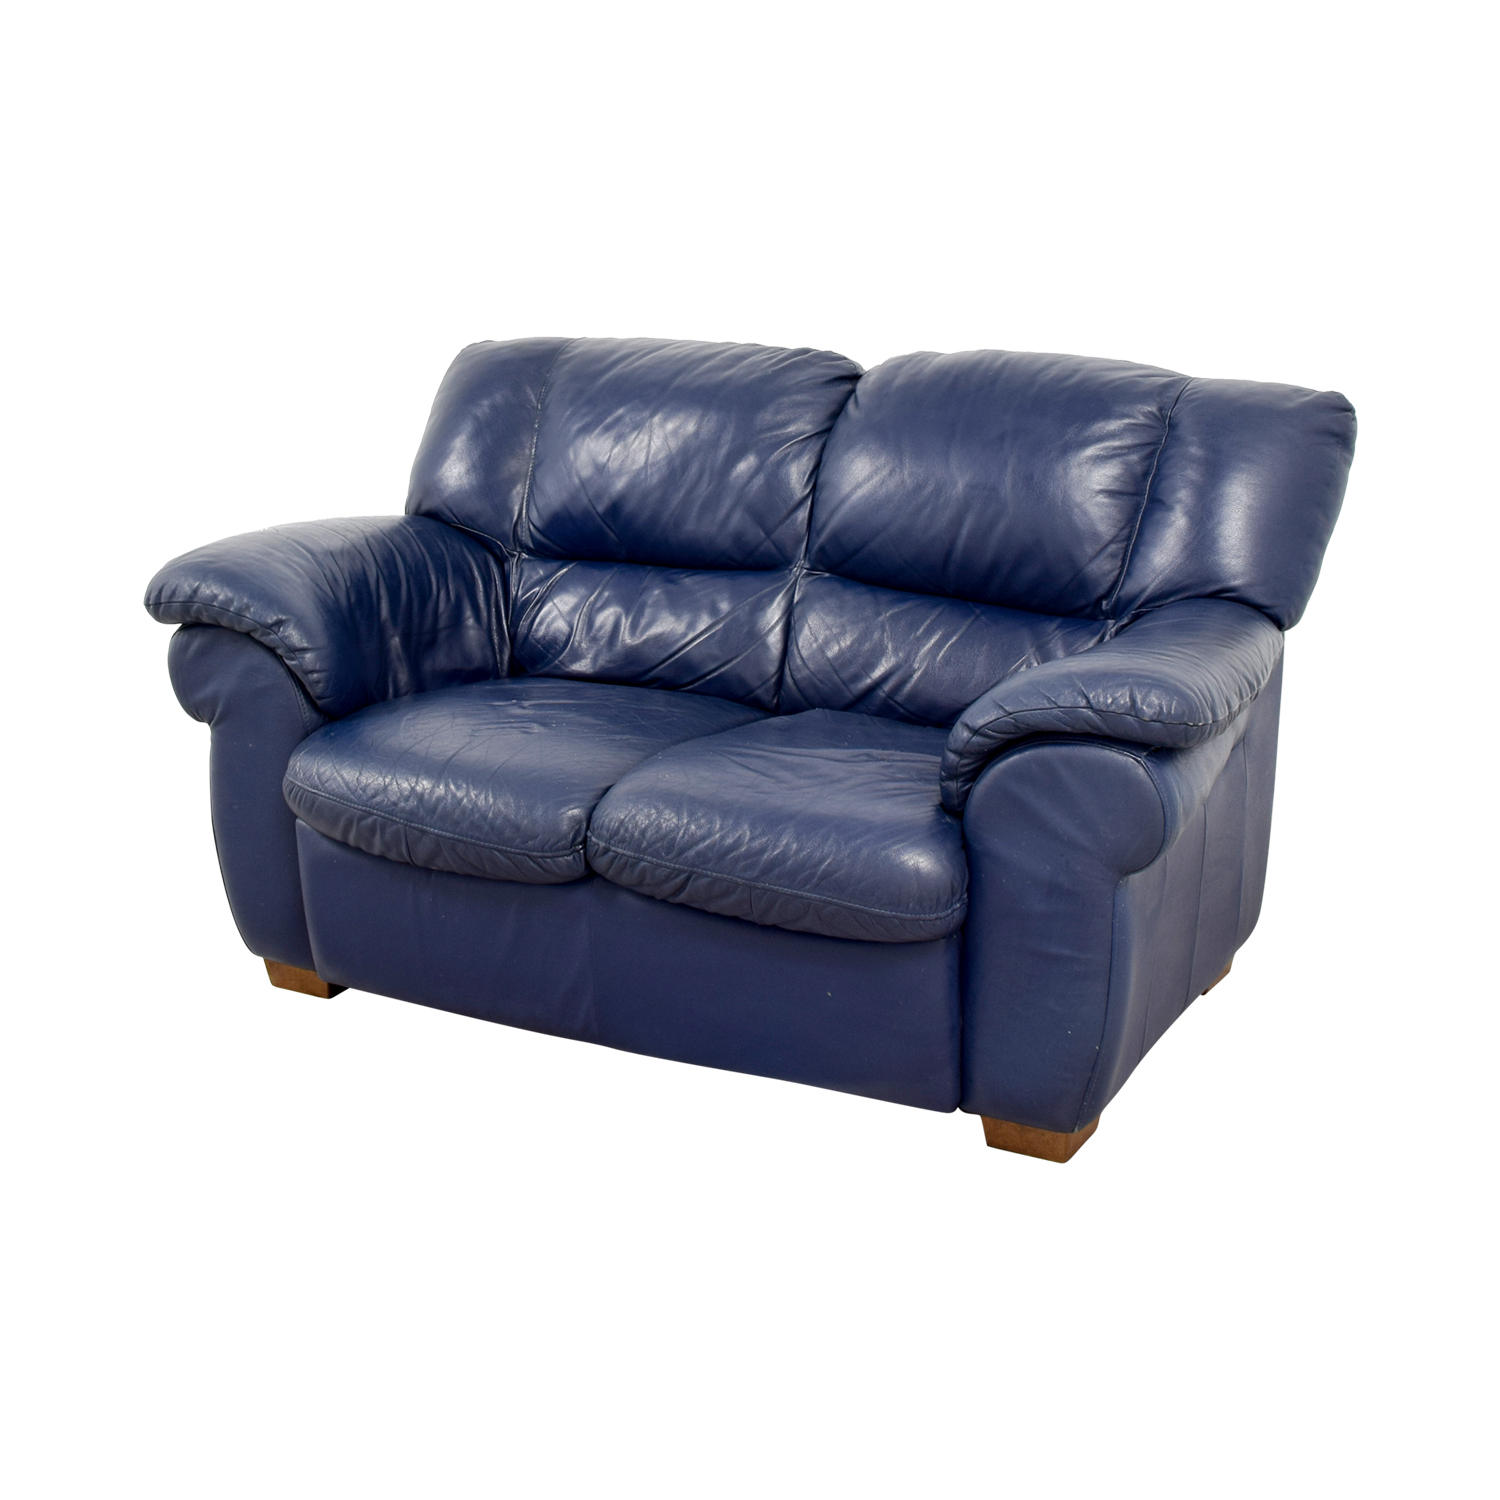 80 Off Macy 39 S Macy 39 S Navy Blue Leather Loveseat Sofas